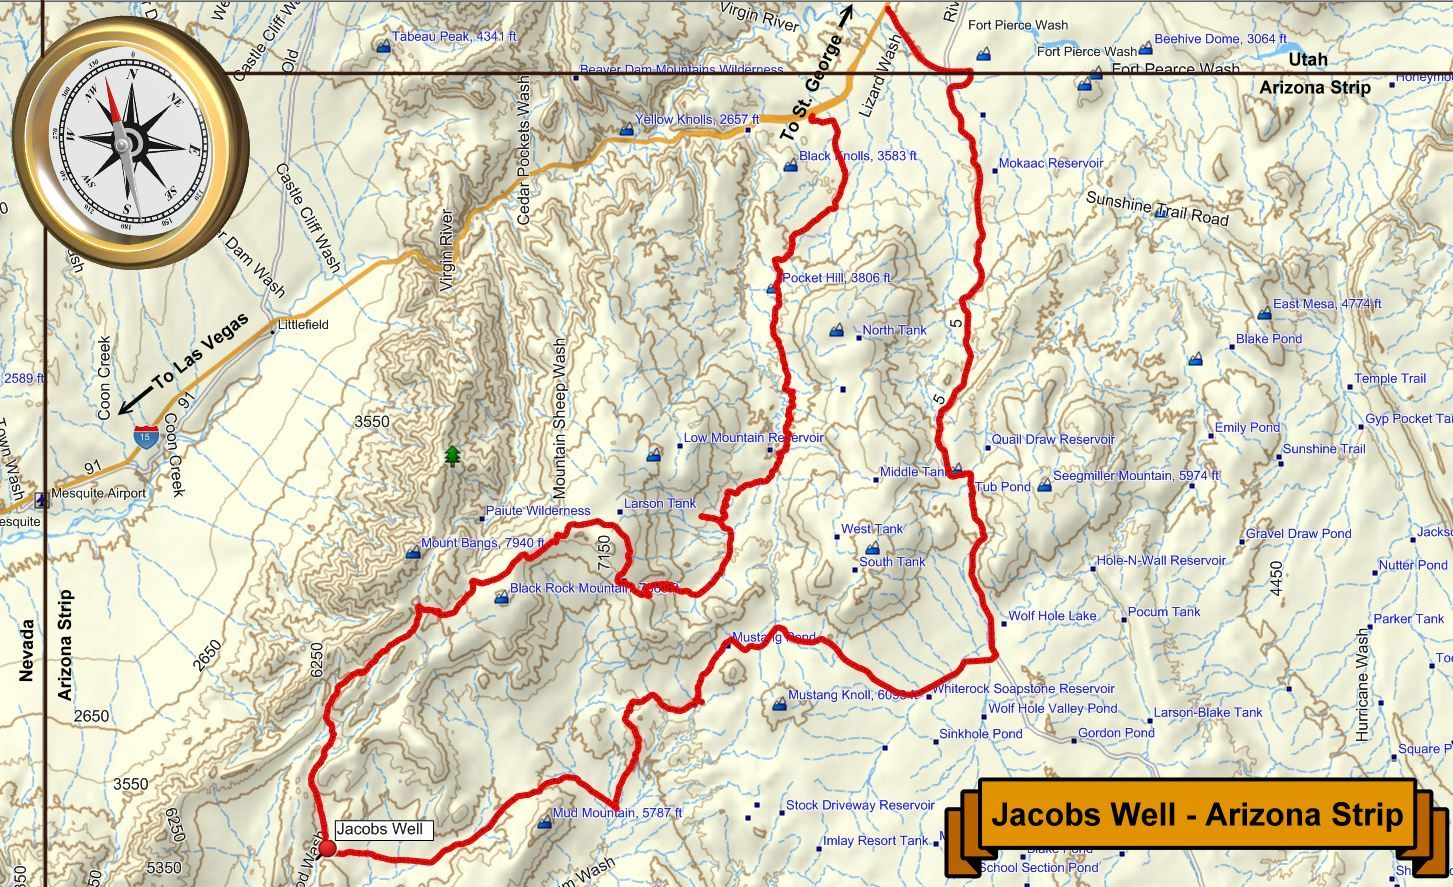 Map Of Arizona Strip.Off Road Trip To Jacobs Well And Other Sites In The Arizona Strip